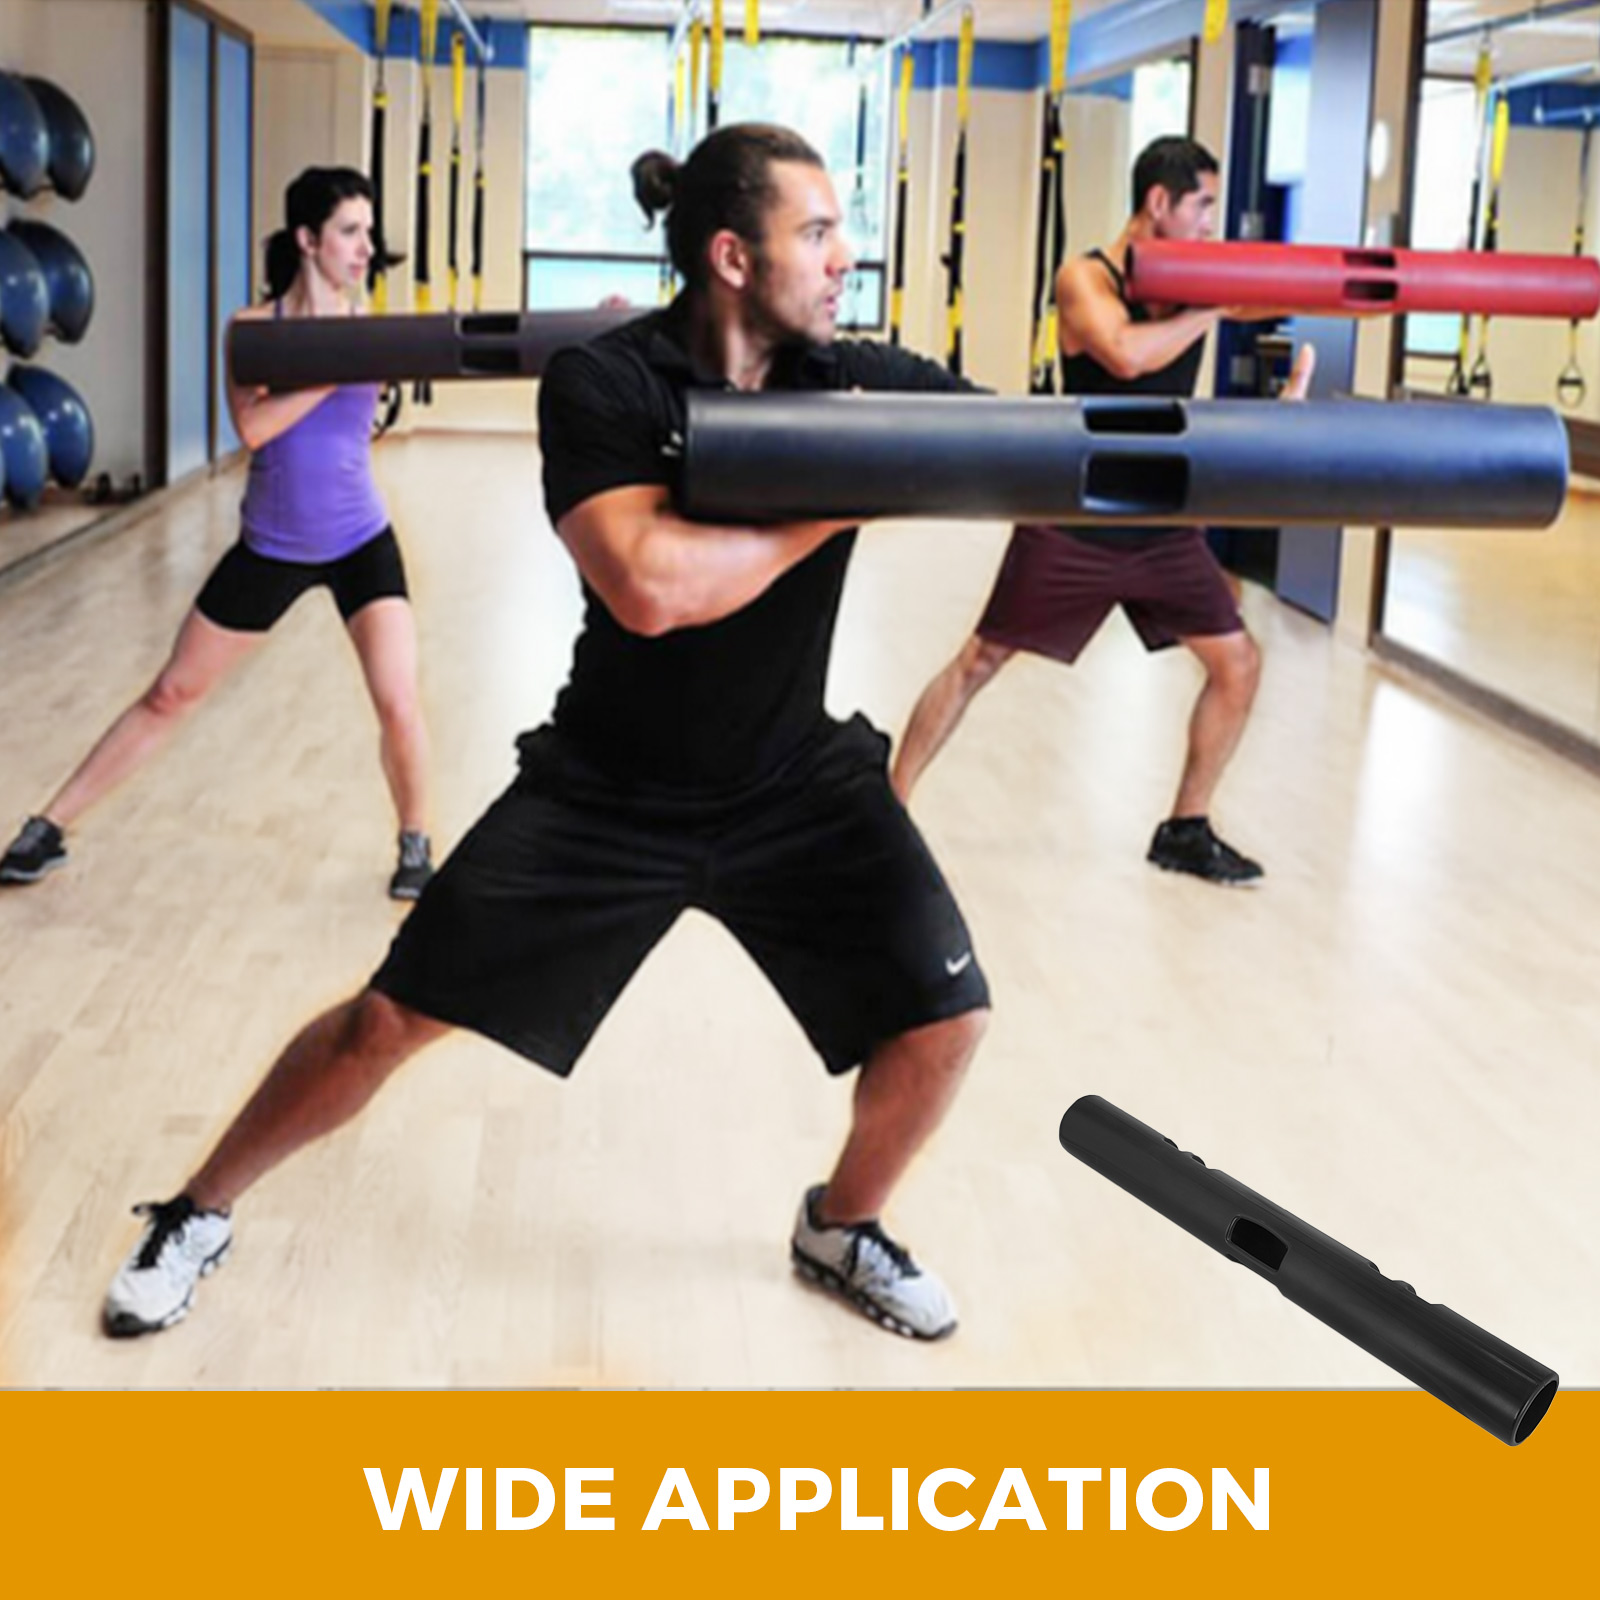 Vipr-Fitpro-Fitness-Tube-Loaded-Movement-Training-weightlifting-4-6-8-10-12-Kg thumbnail 283